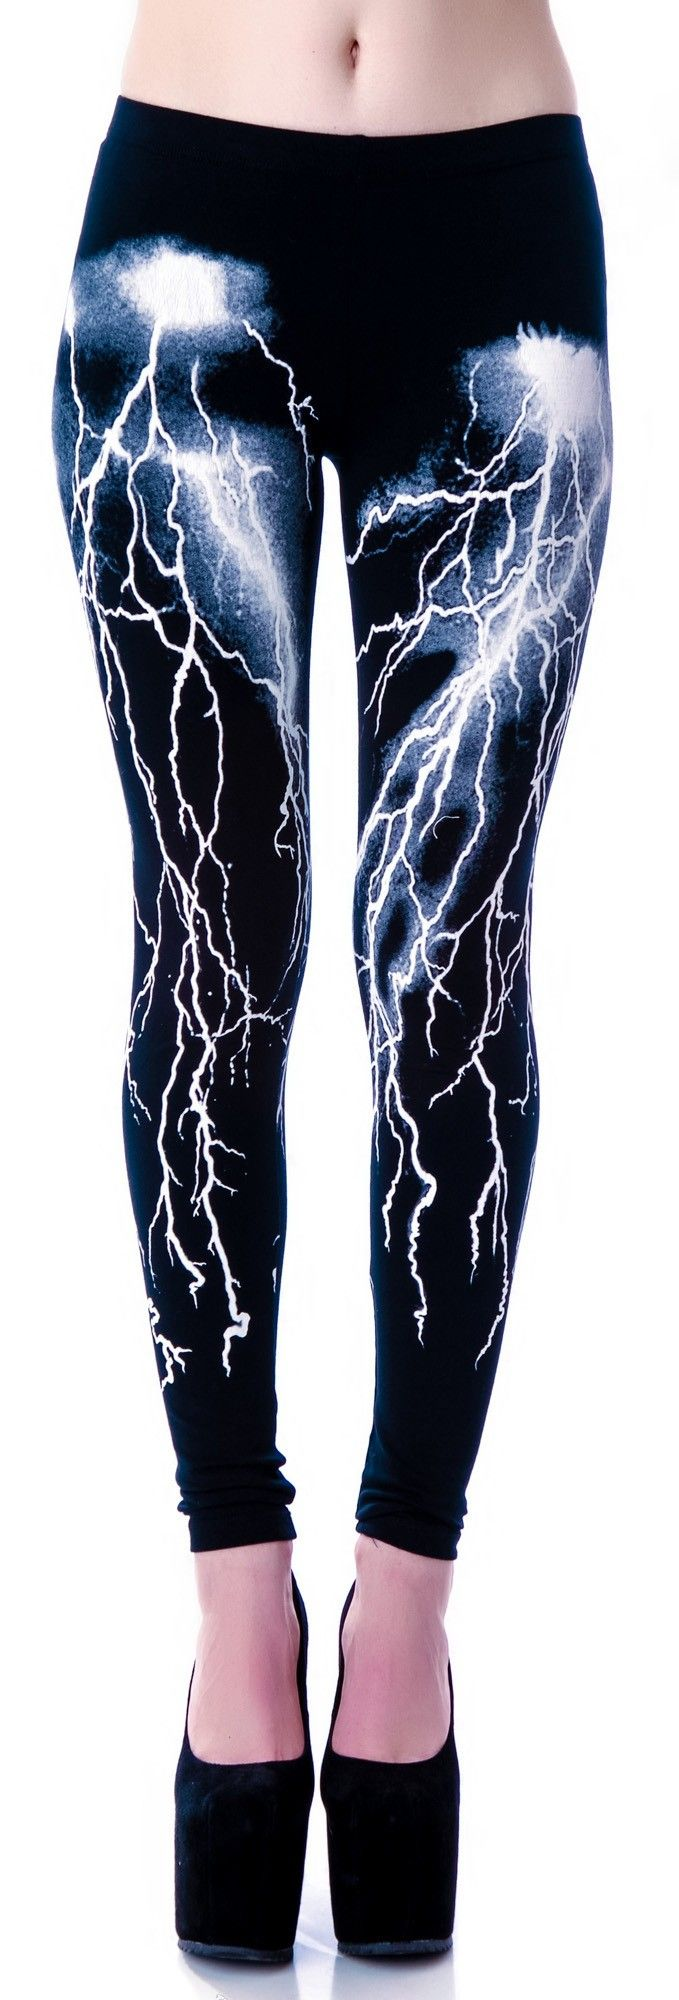 Fashion Victim Lightning Leggings by Lip Service $59 - $28 at DollsKill. basic low rise cut. screenprint design on the legs.  Slim fit skinny ankle huggers.  Model wears size XS and is 5'8 Cotton Spandex blend.